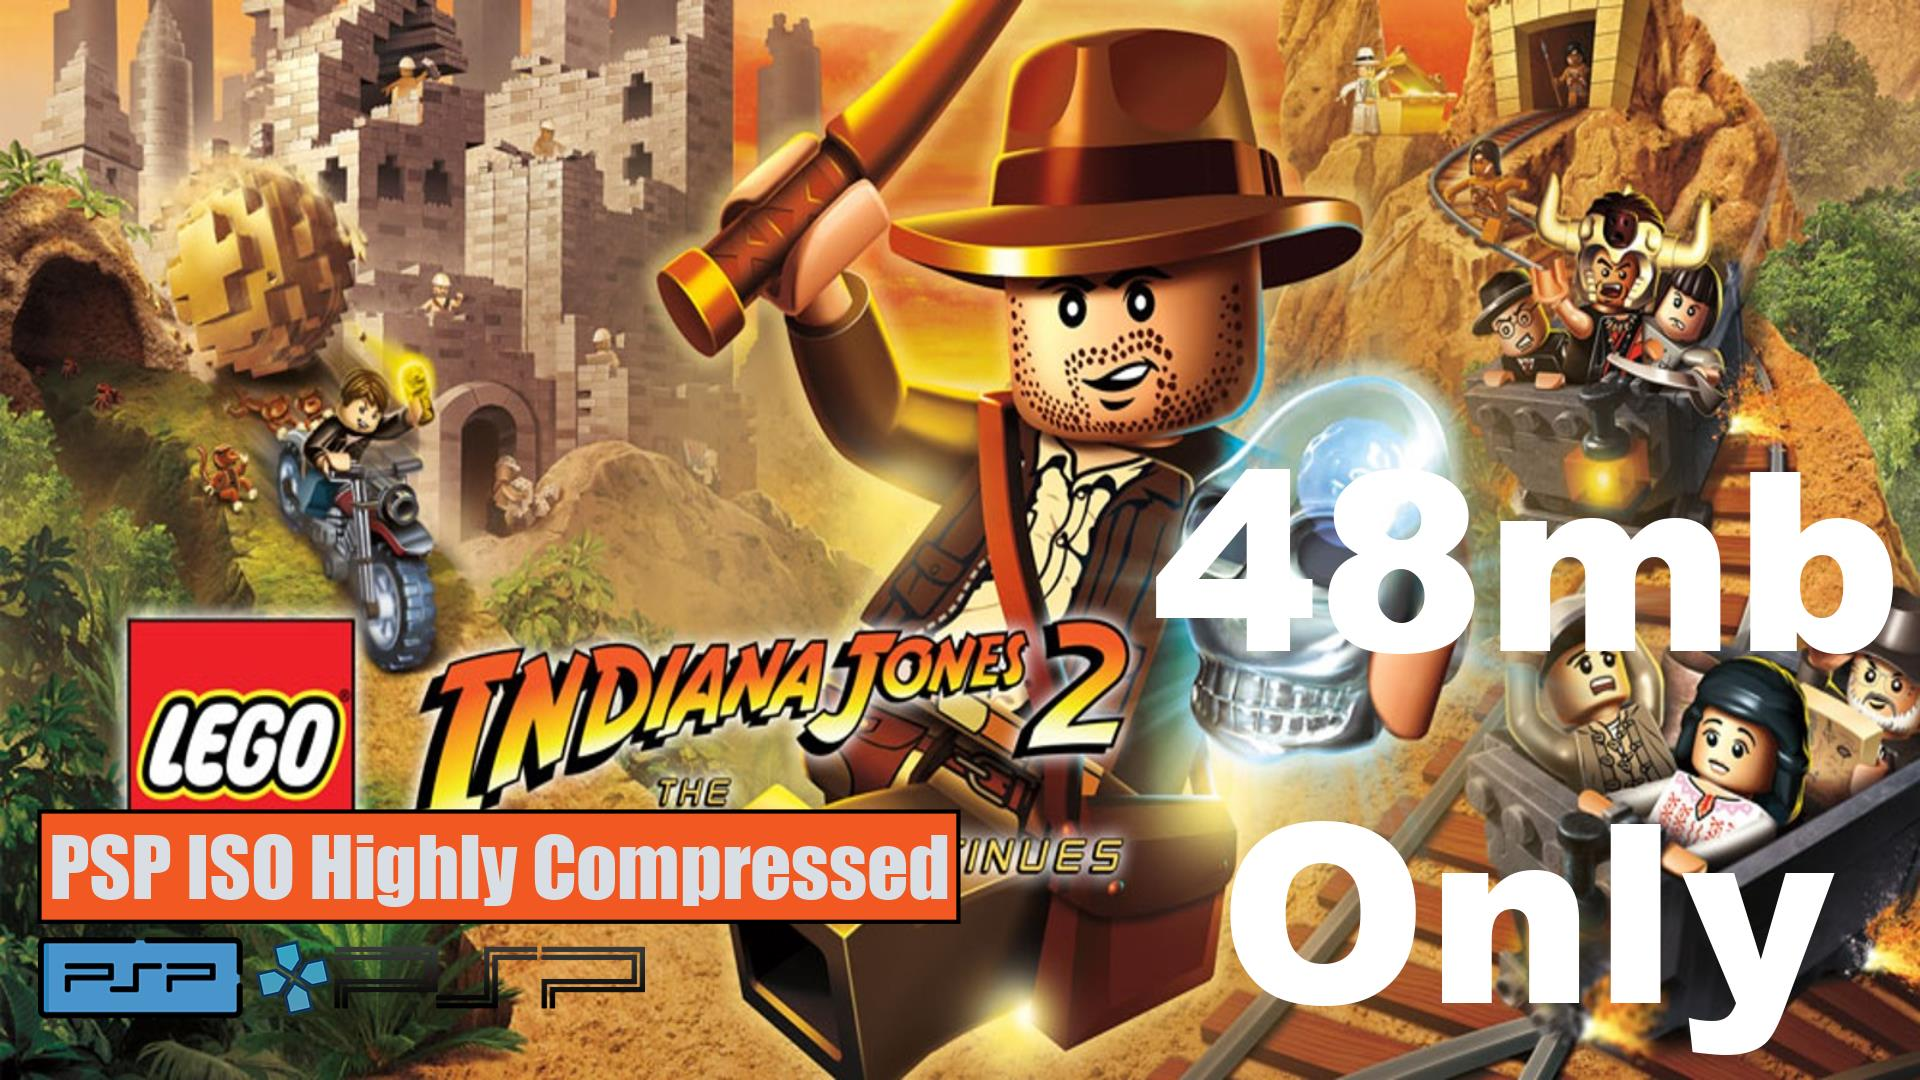 Lego Indiana Jones 2 The Adventure Continues PSP ISO Highly Compressed